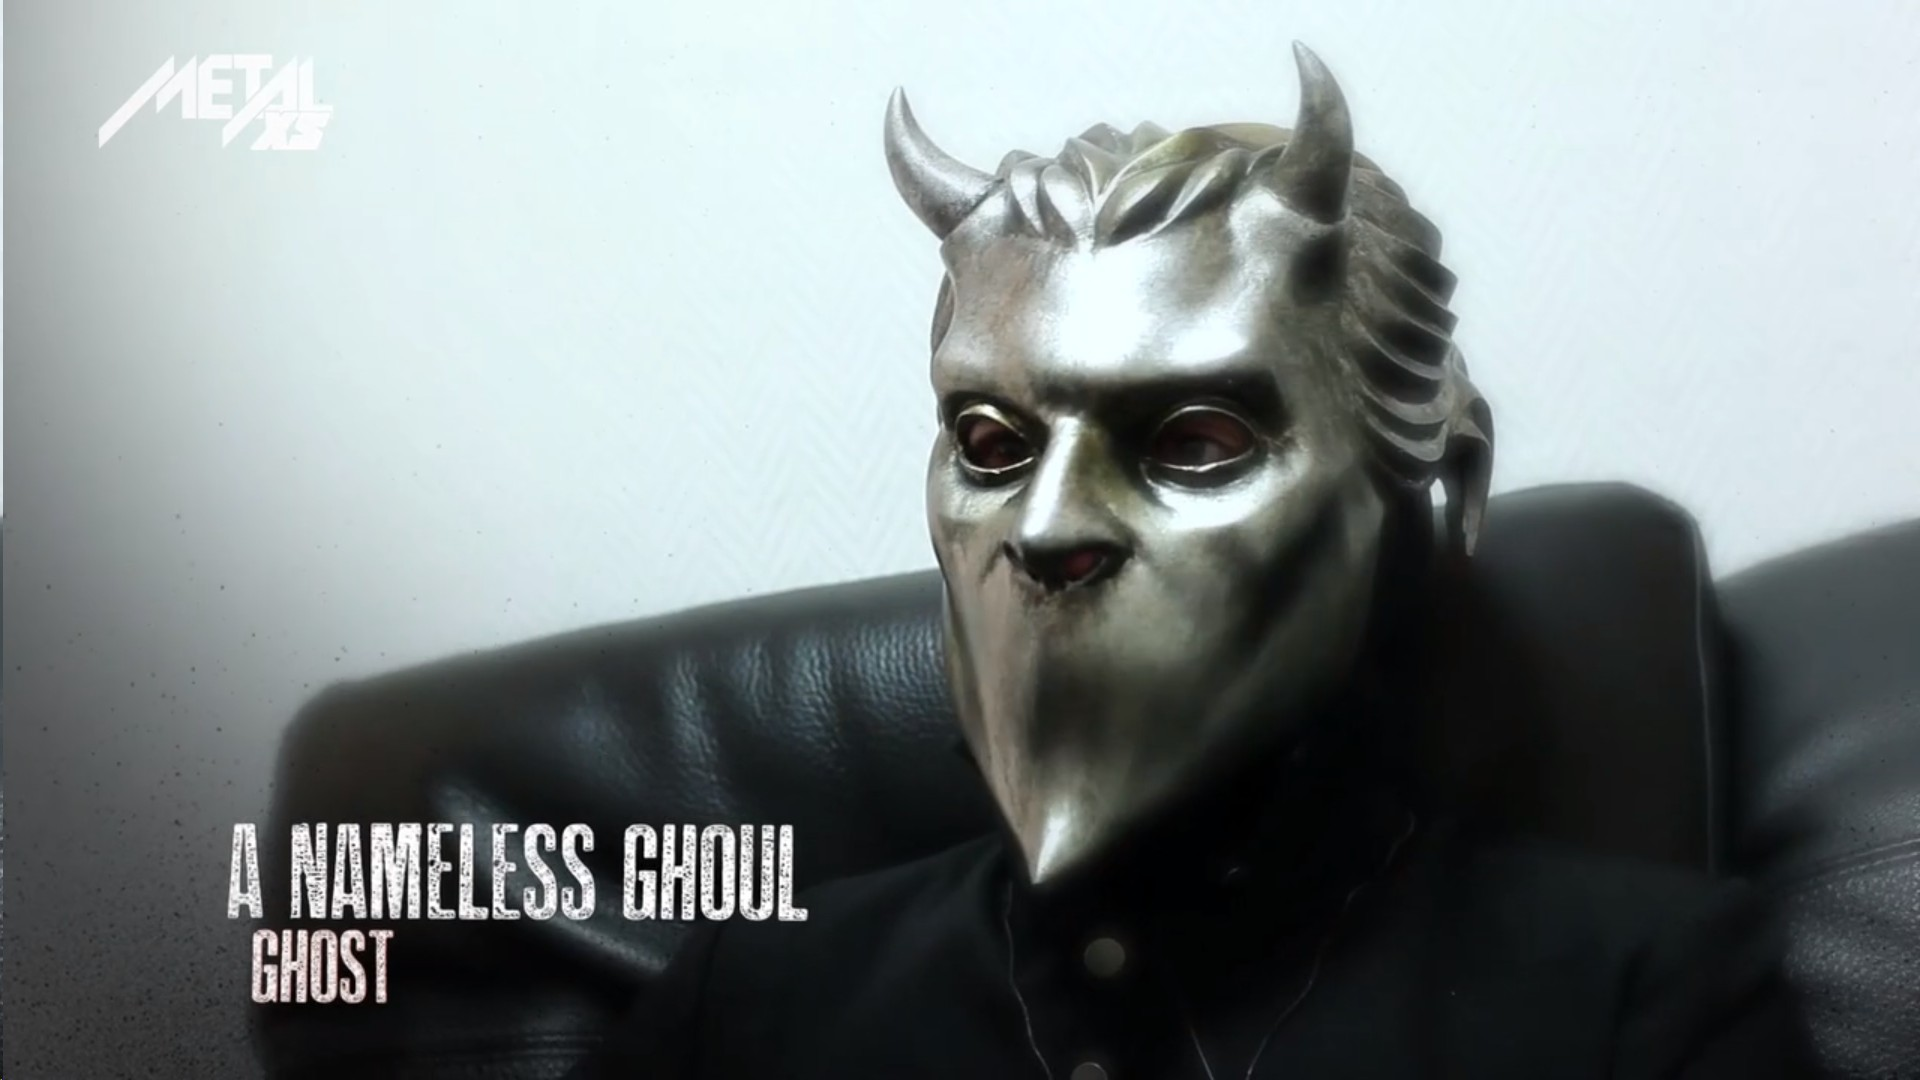 Metal XS: Nameless Ghoul Explains Why Philadelphia Show Was Rescheduled